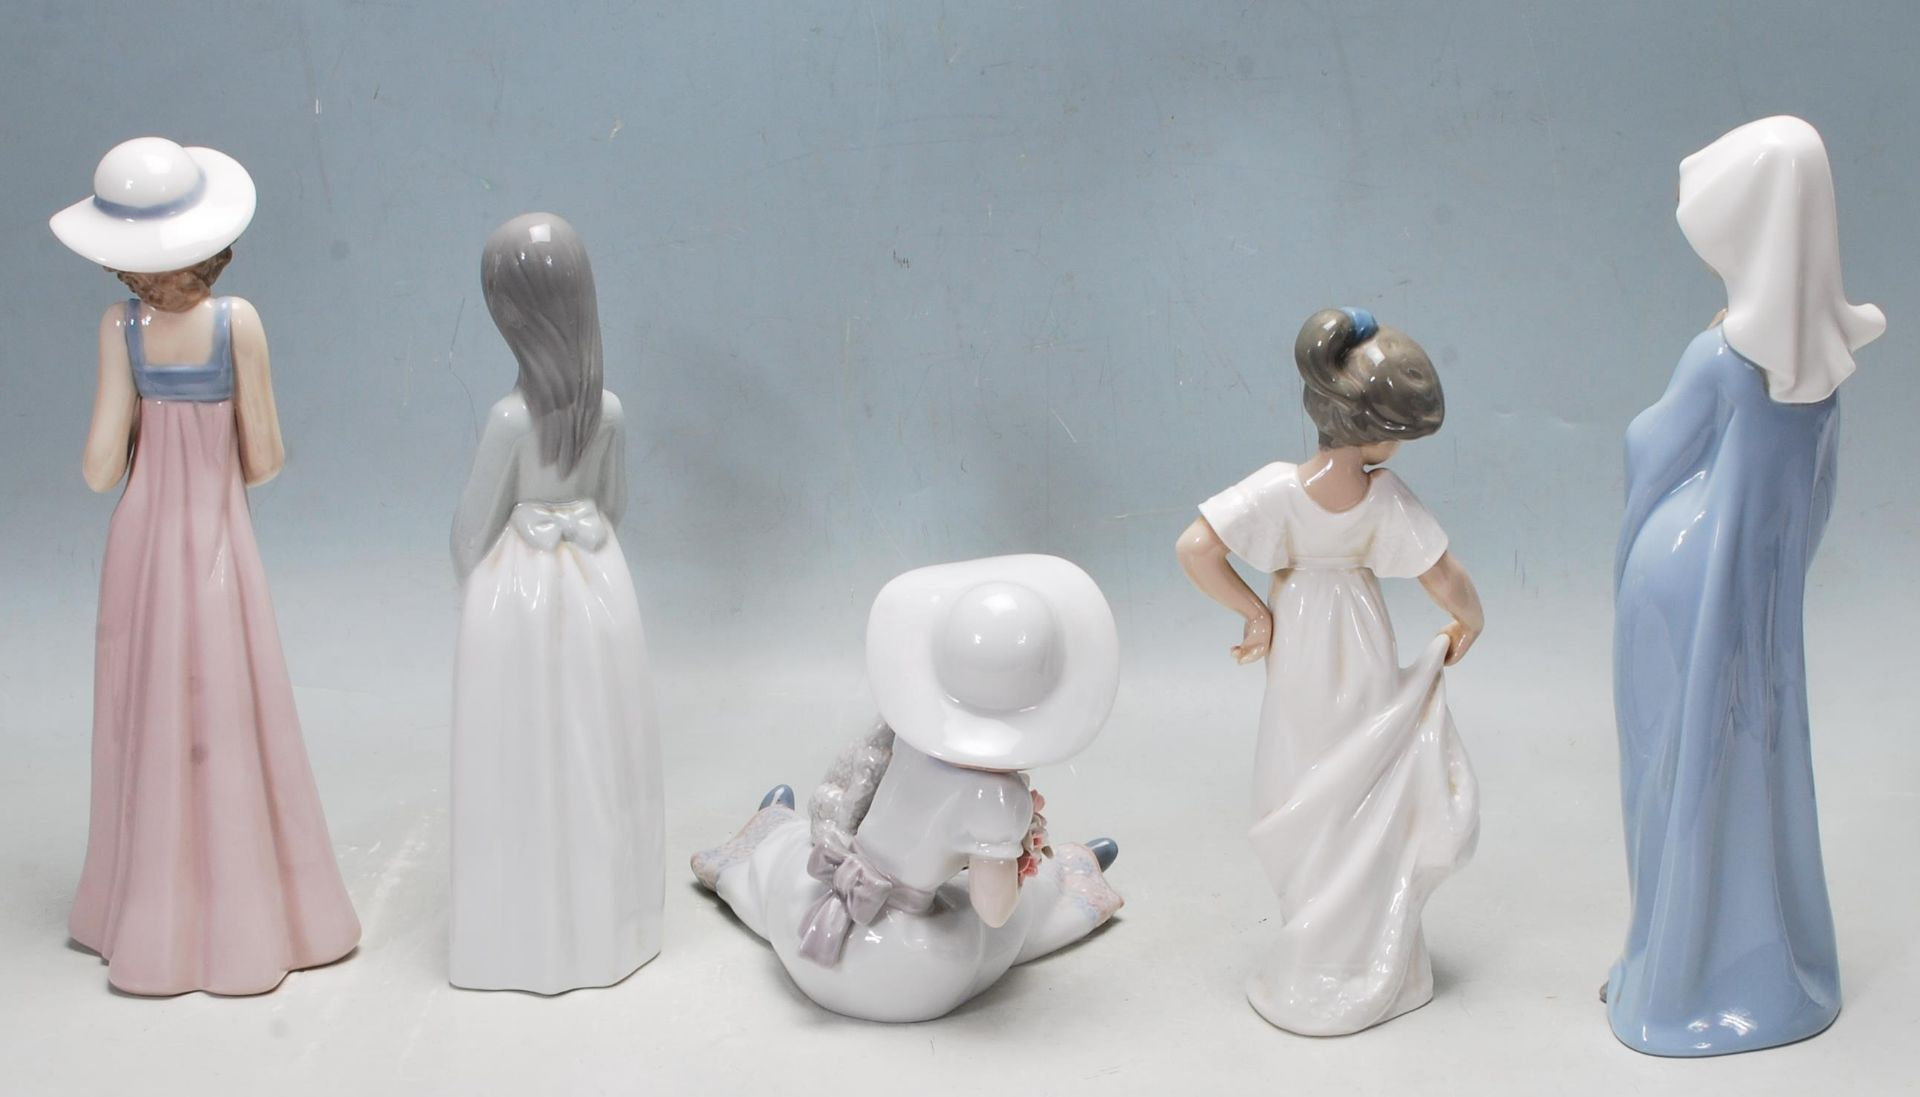 COLLECTION OF LATE 20TH CENTURY NAO FIGURINES - Image 3 of 10